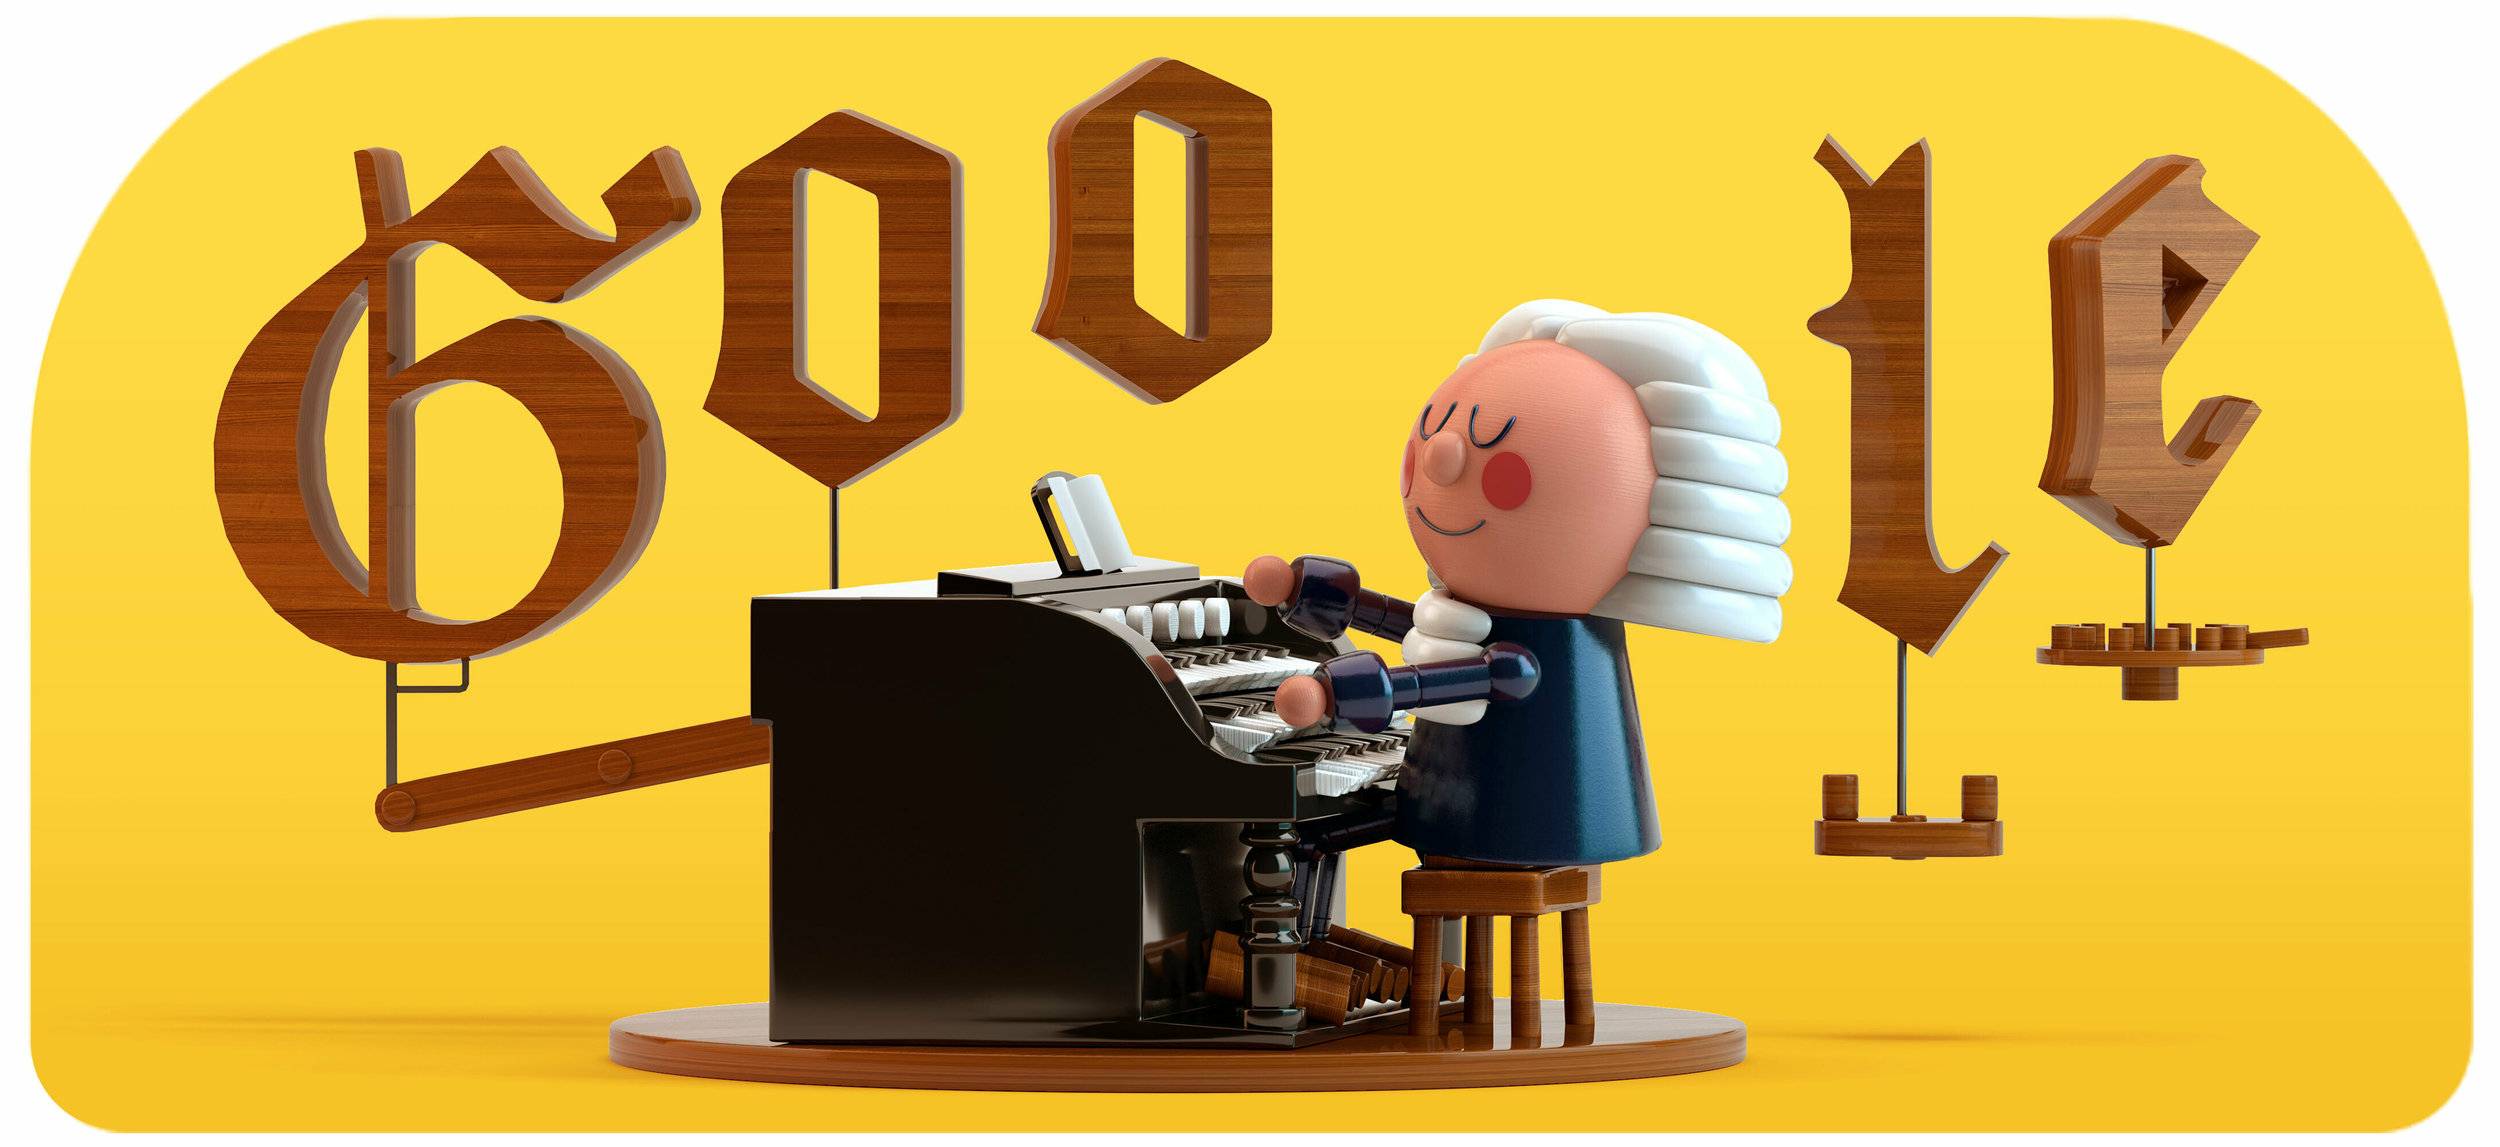 This image provided by Google shows the animated Google Doodle on Thursday